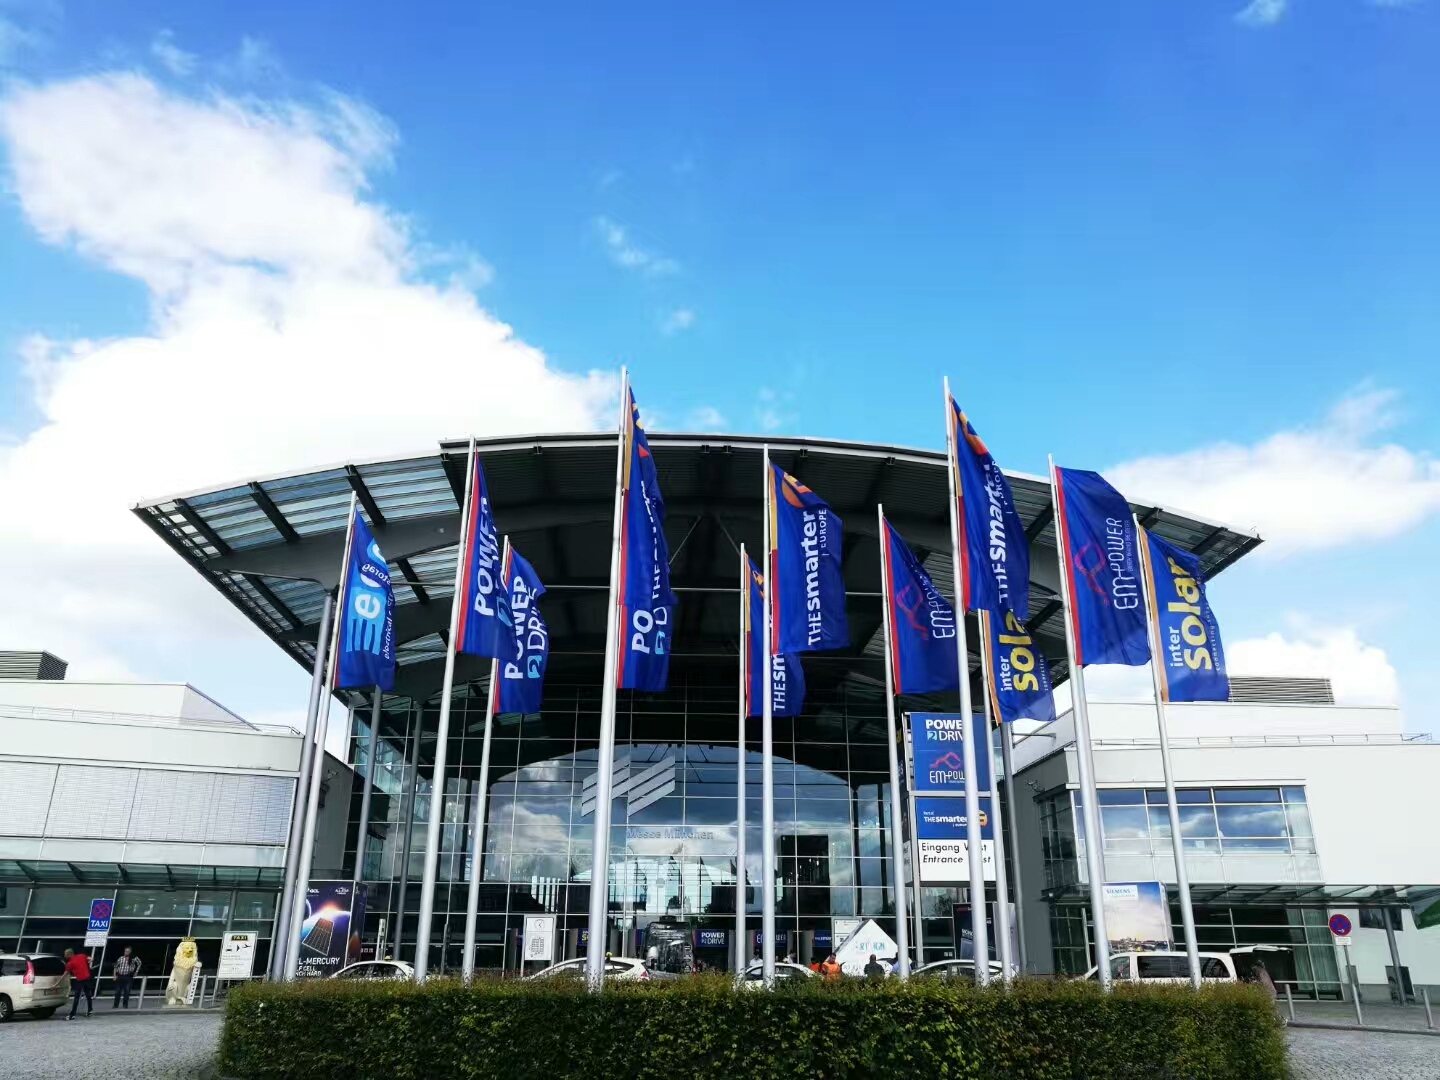 Welcome to meet SAKO at Intersolar Europe 2019 in Munich Germany